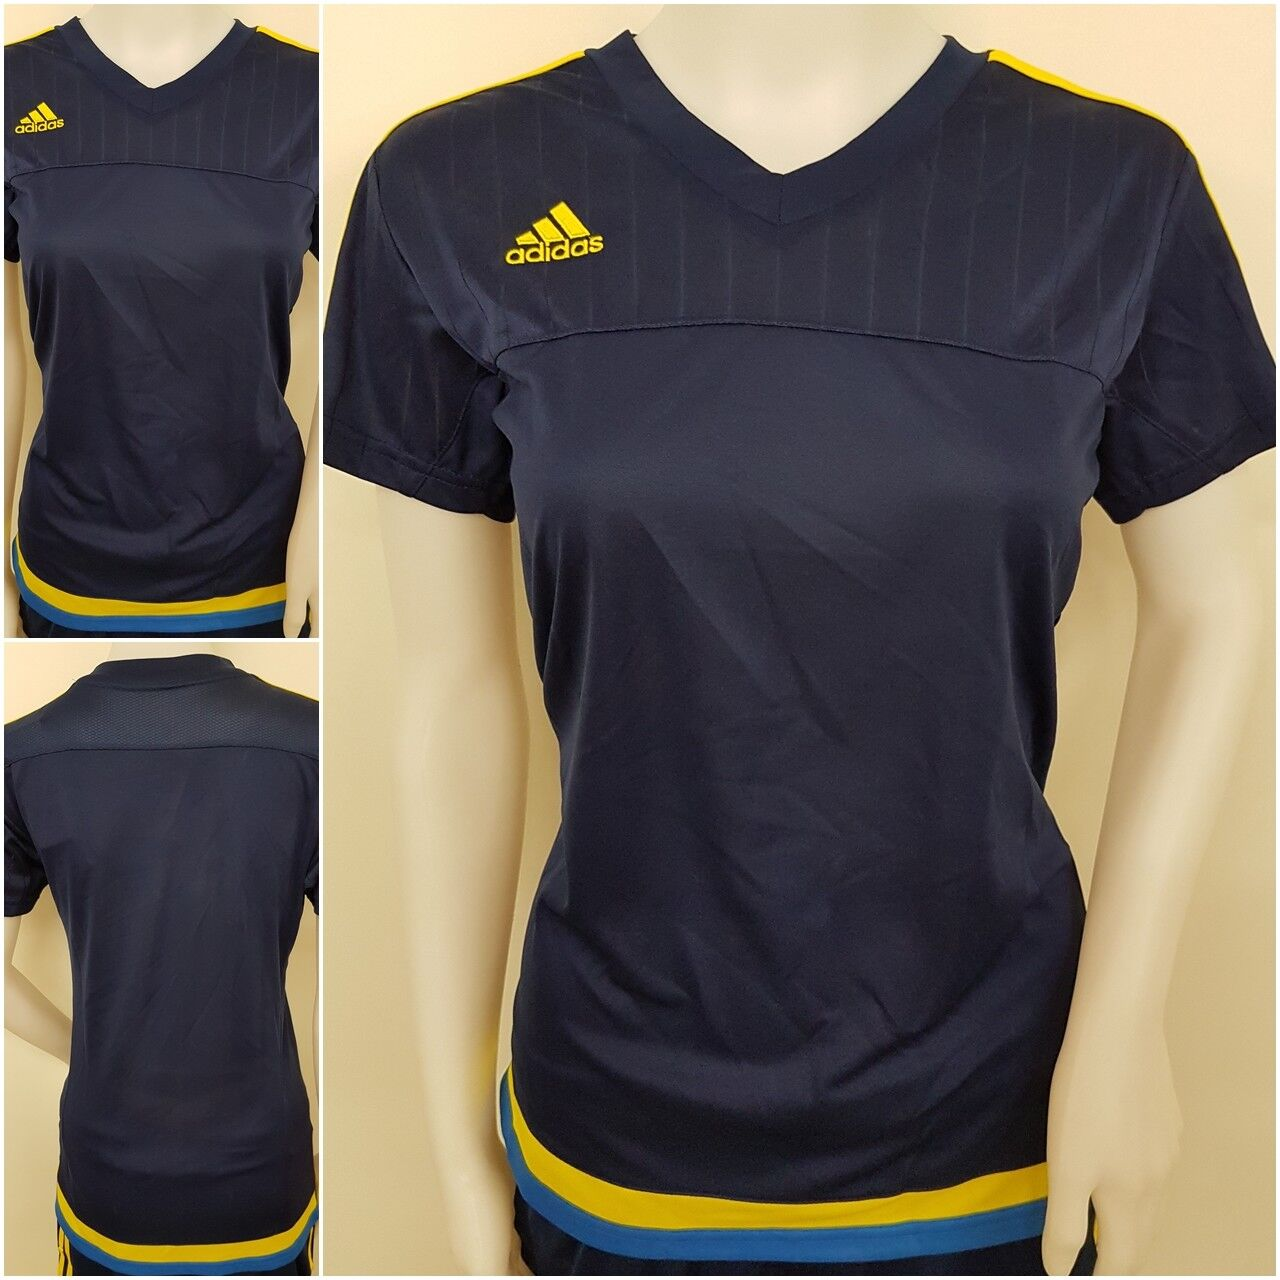 adidas Damen Tennis Golf Fitness Shirt Trikot Short Hose Frauen LIC blau L O